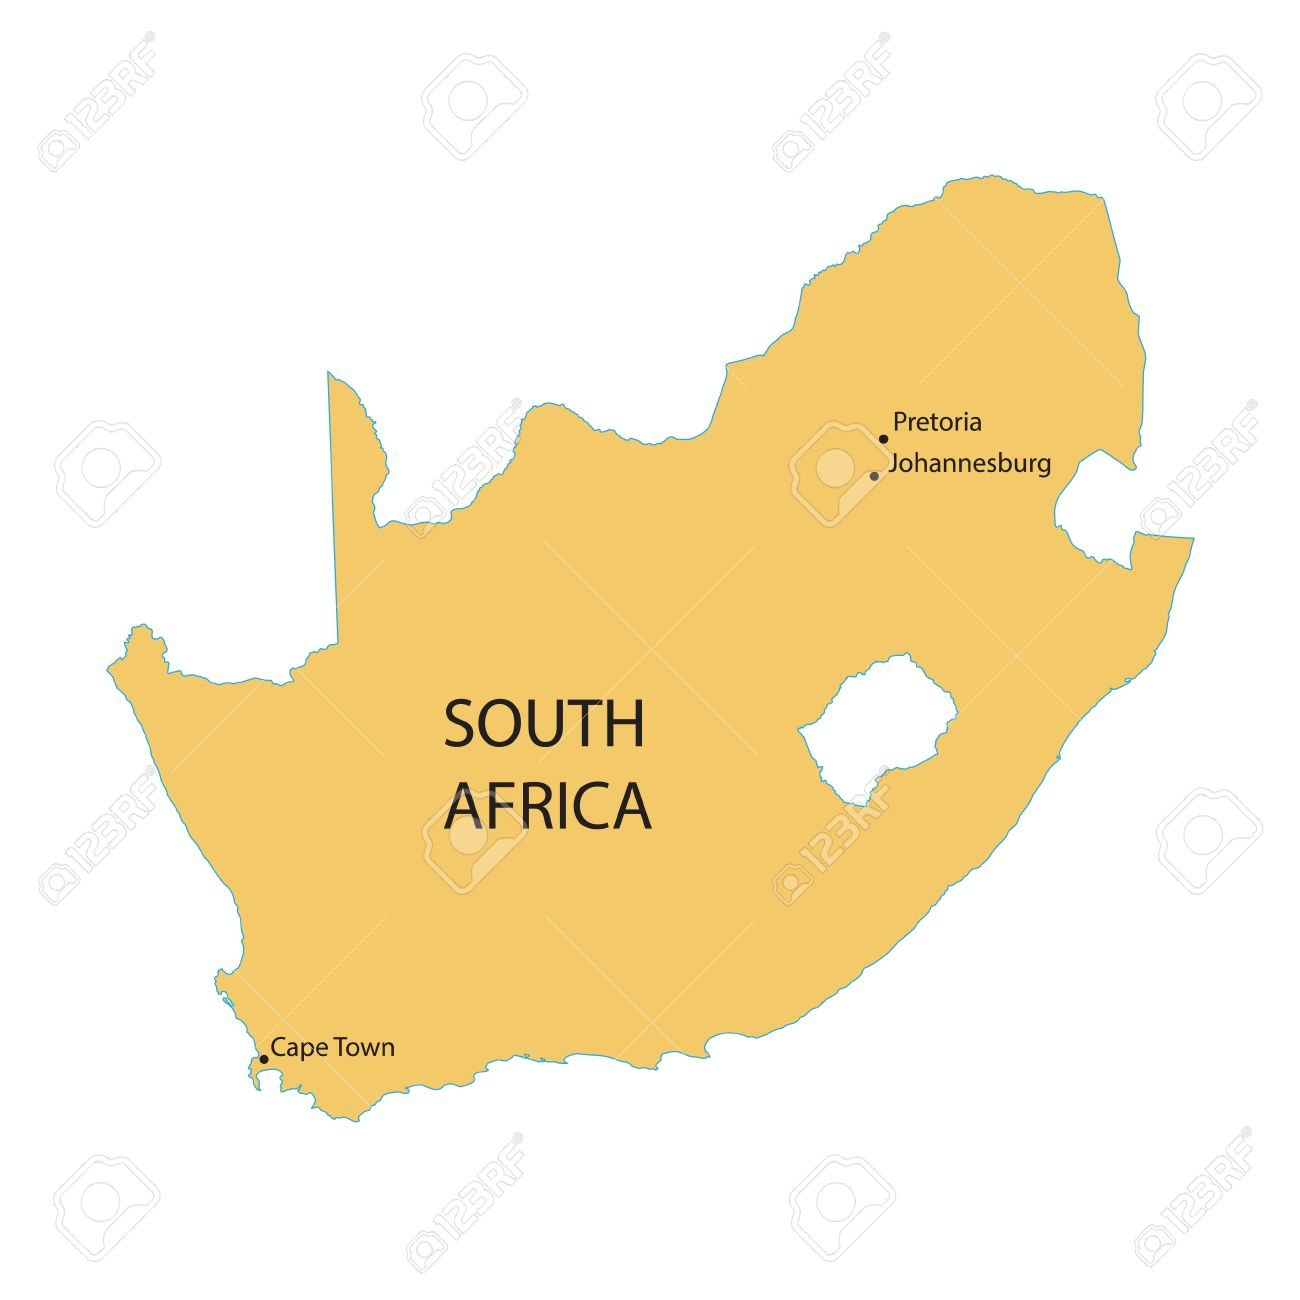 South Africa Major Cities Map.Vector Map Of South Africa With Indication Of Capital Cities